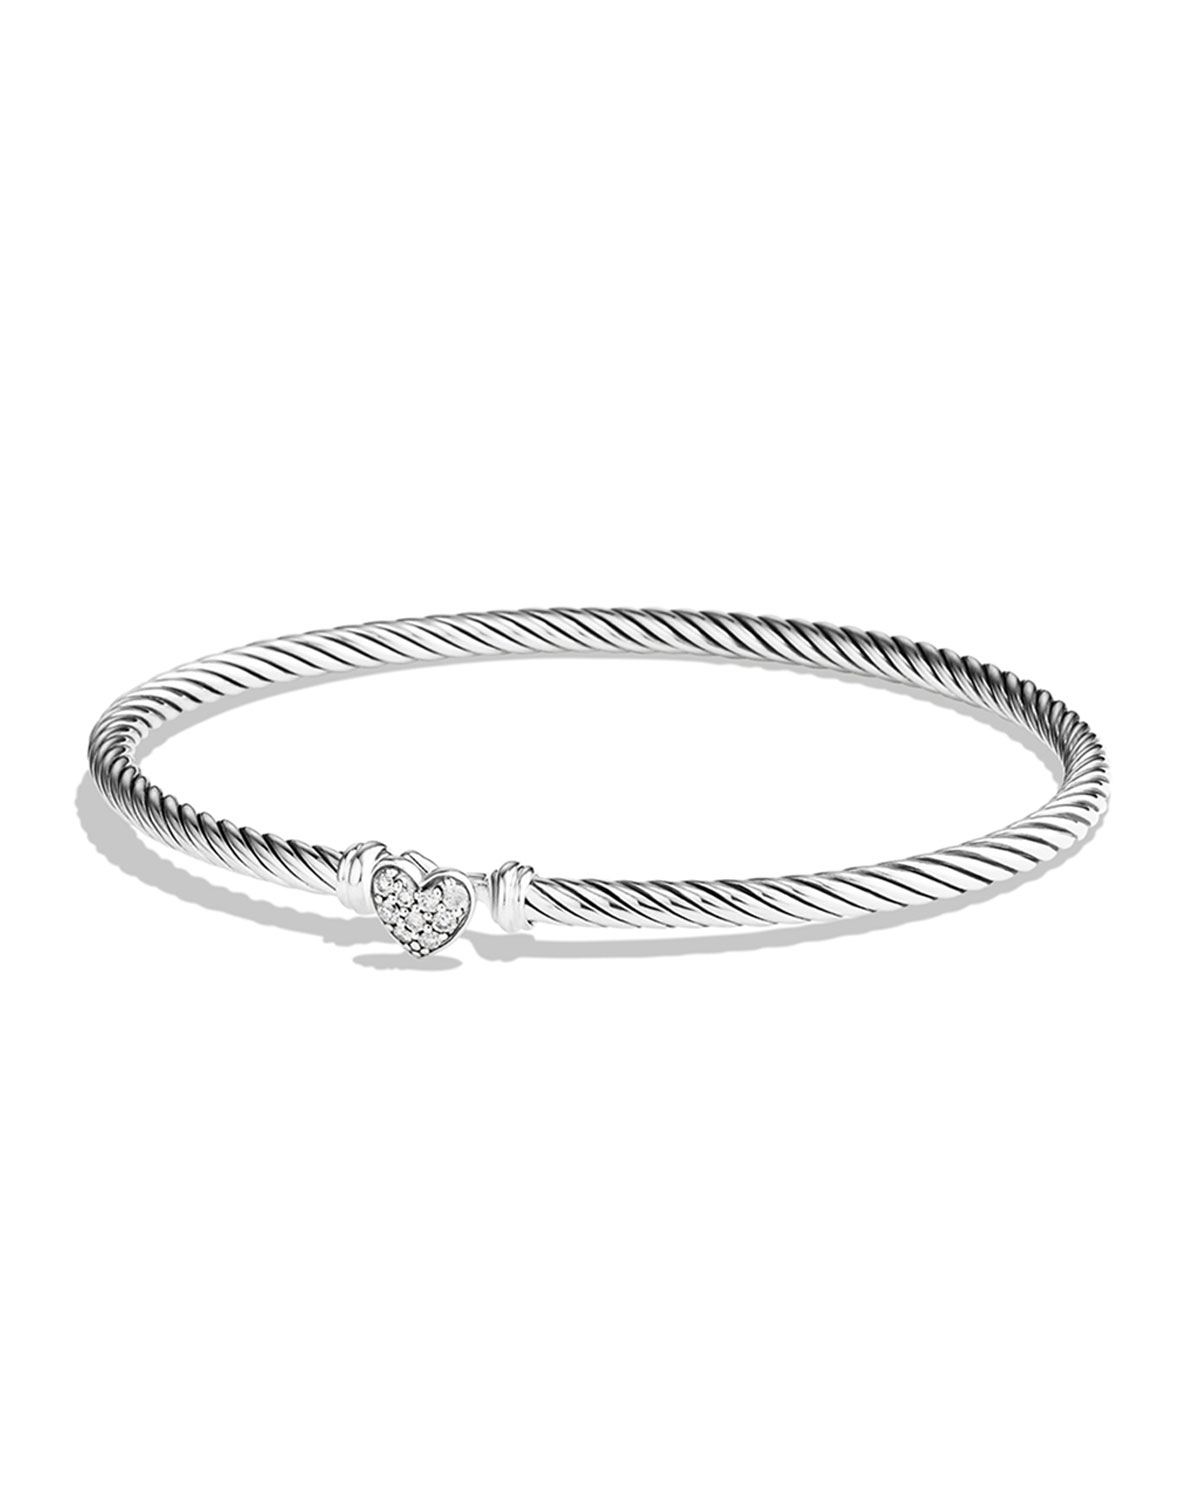 3mm Cable Collectibles Heart Bracelet with Diamonds